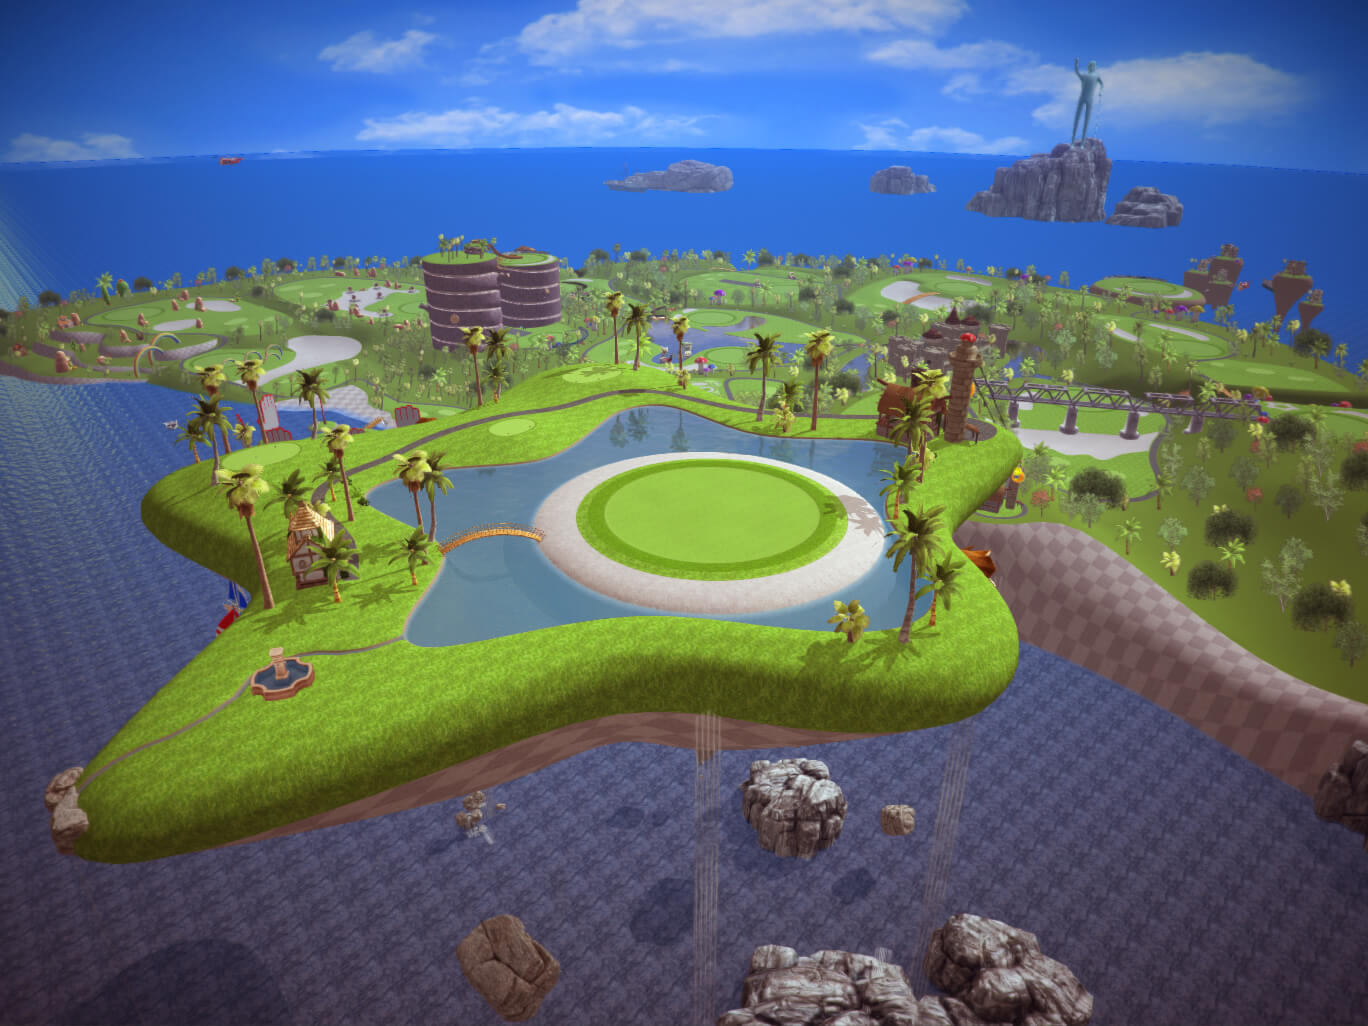 Screen Image of X-Golf Moonlight Kids Golf Course